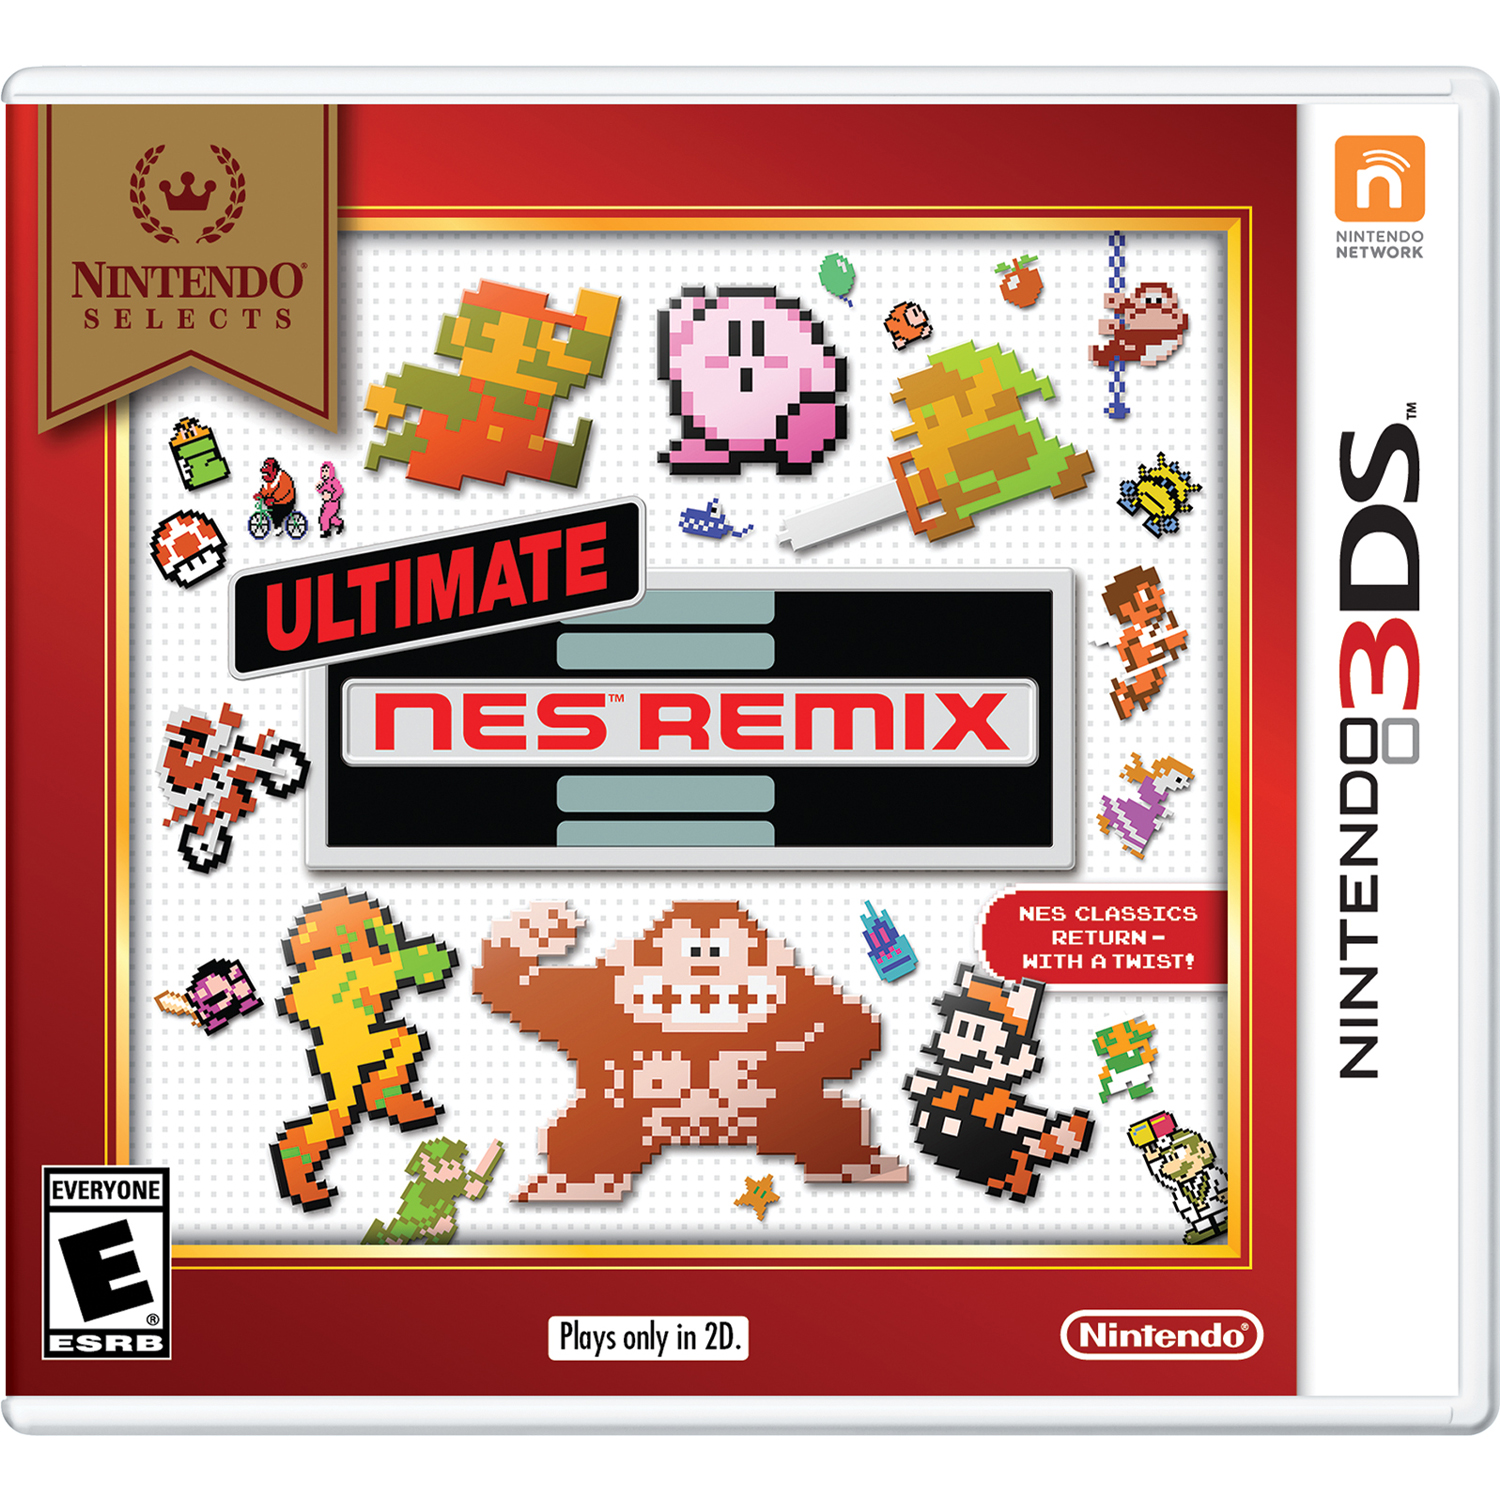 Ultimate NES Remix (Nintendo Selects), Nintendo, Nintendo 3DS, 045496744960